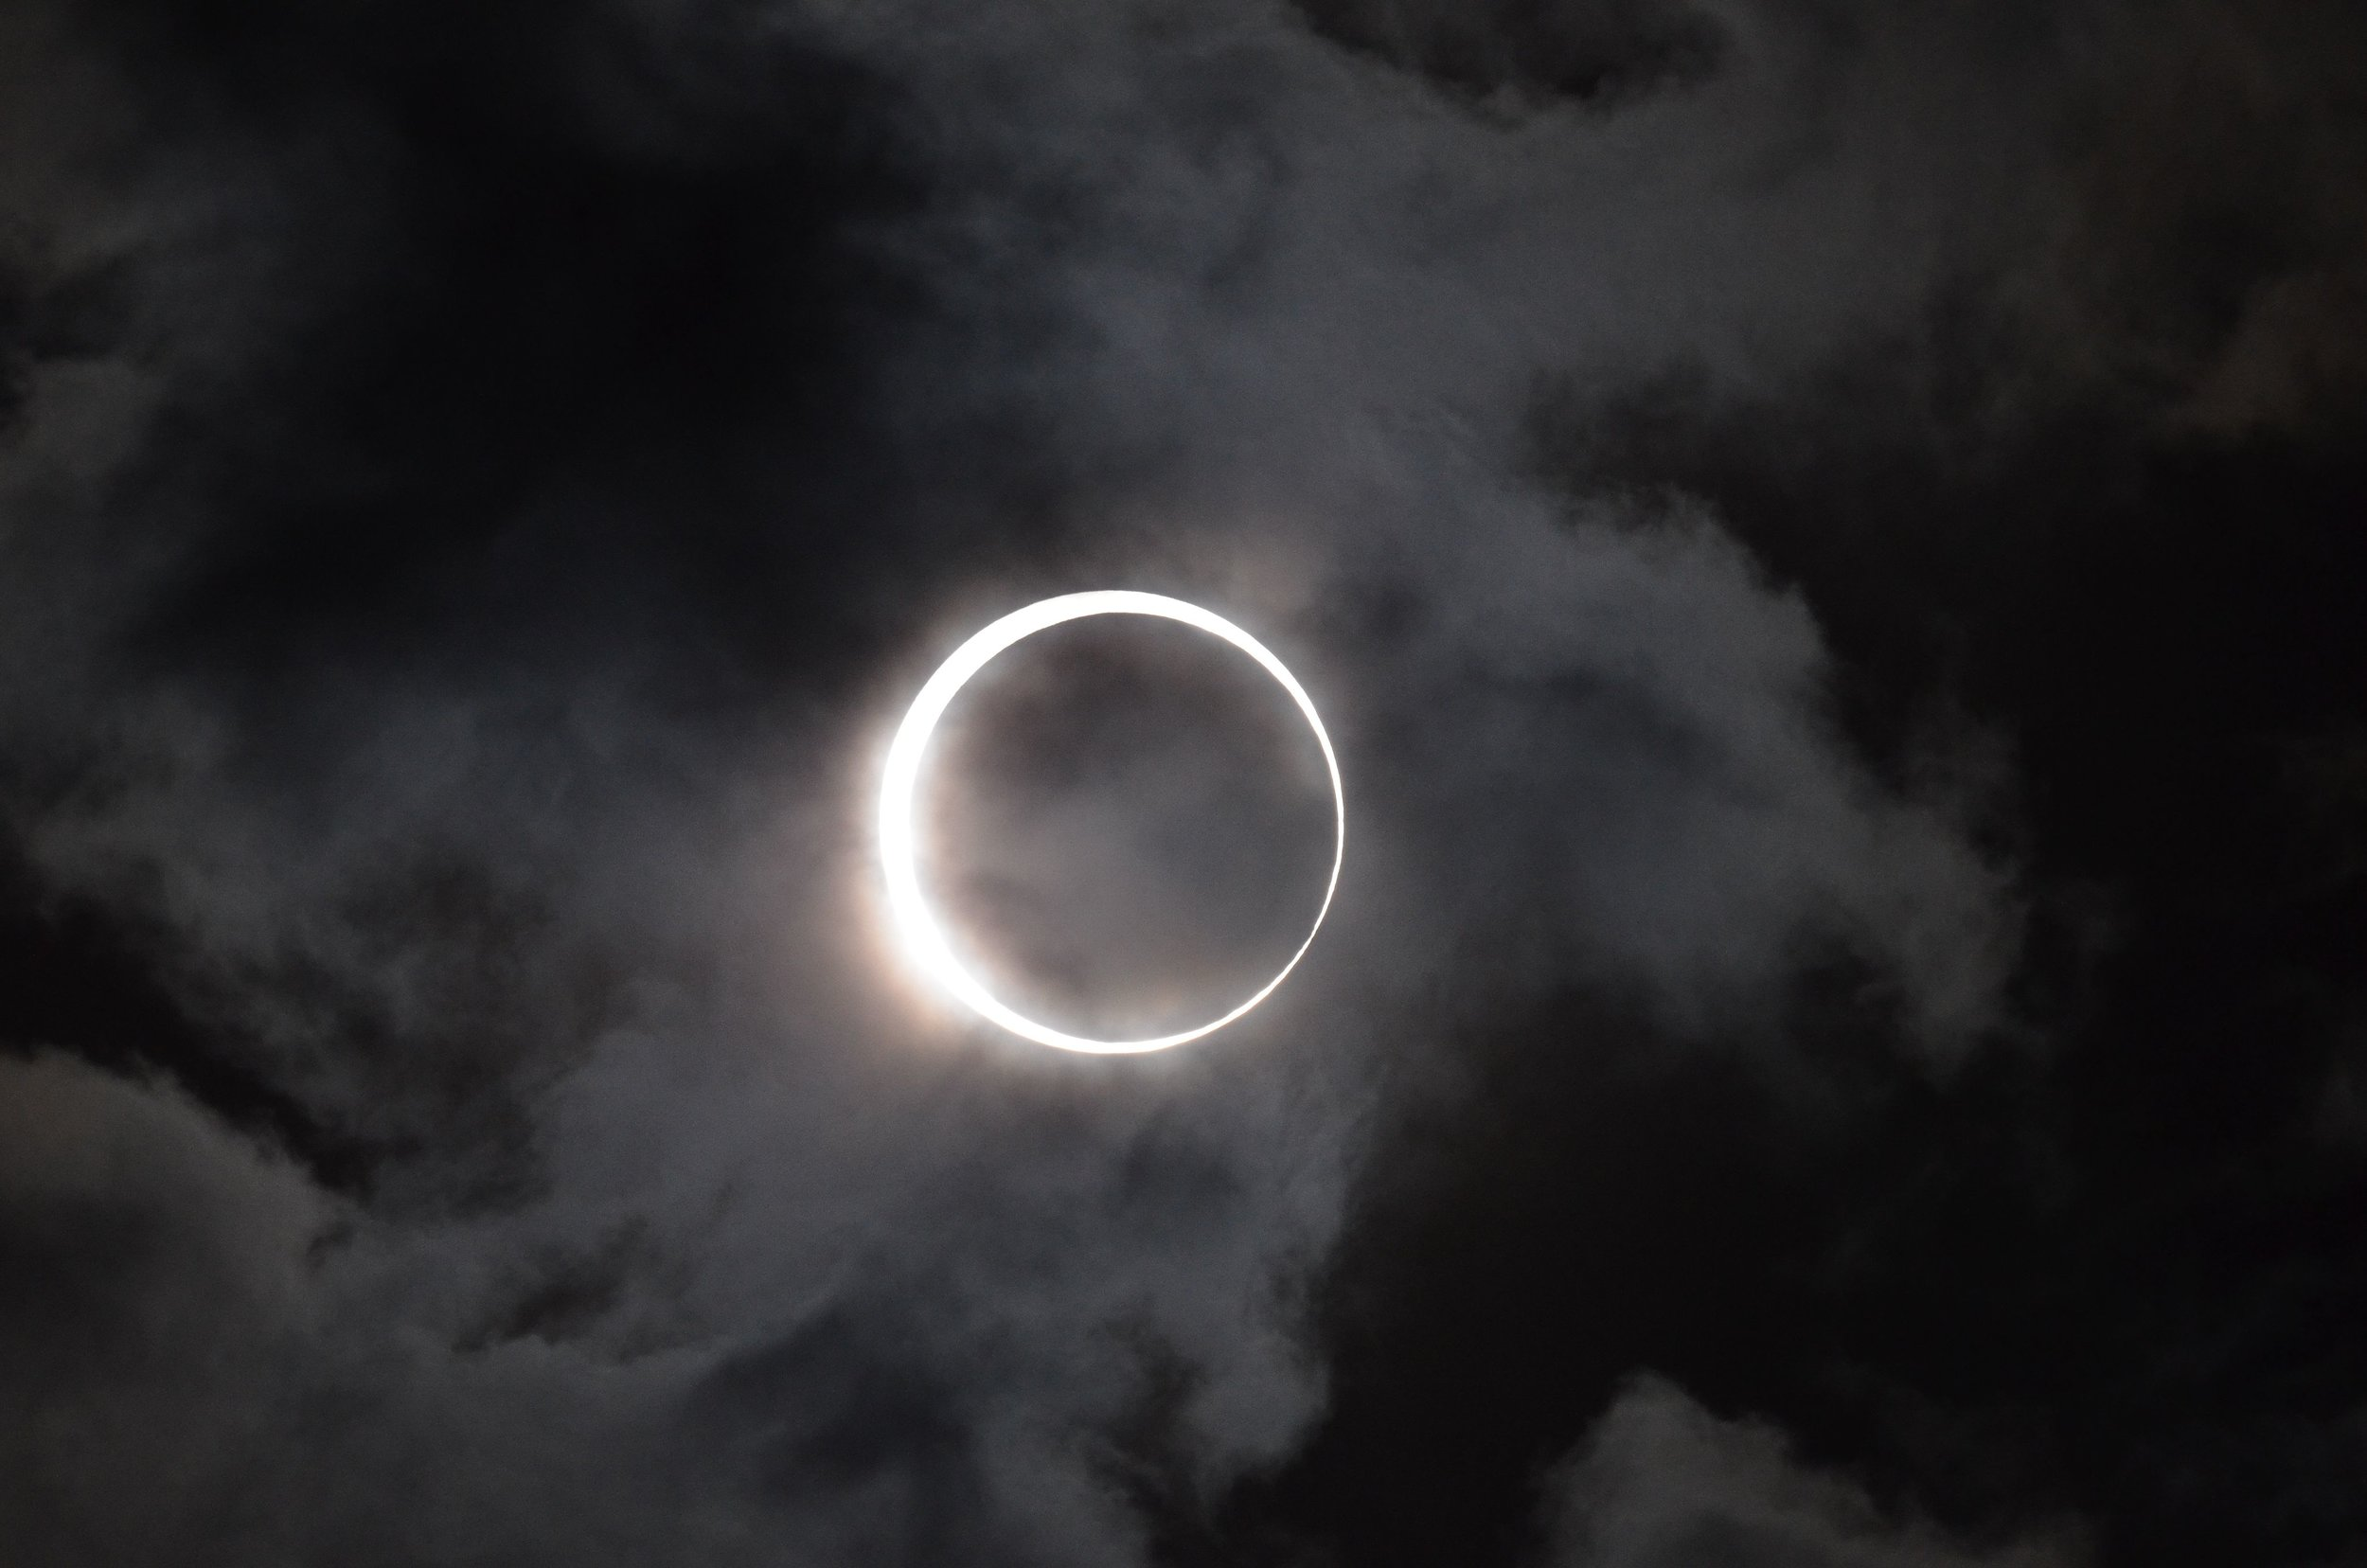 Annular solar eclipse; photo by Takeshi Kuboki via Wikimedia Commons